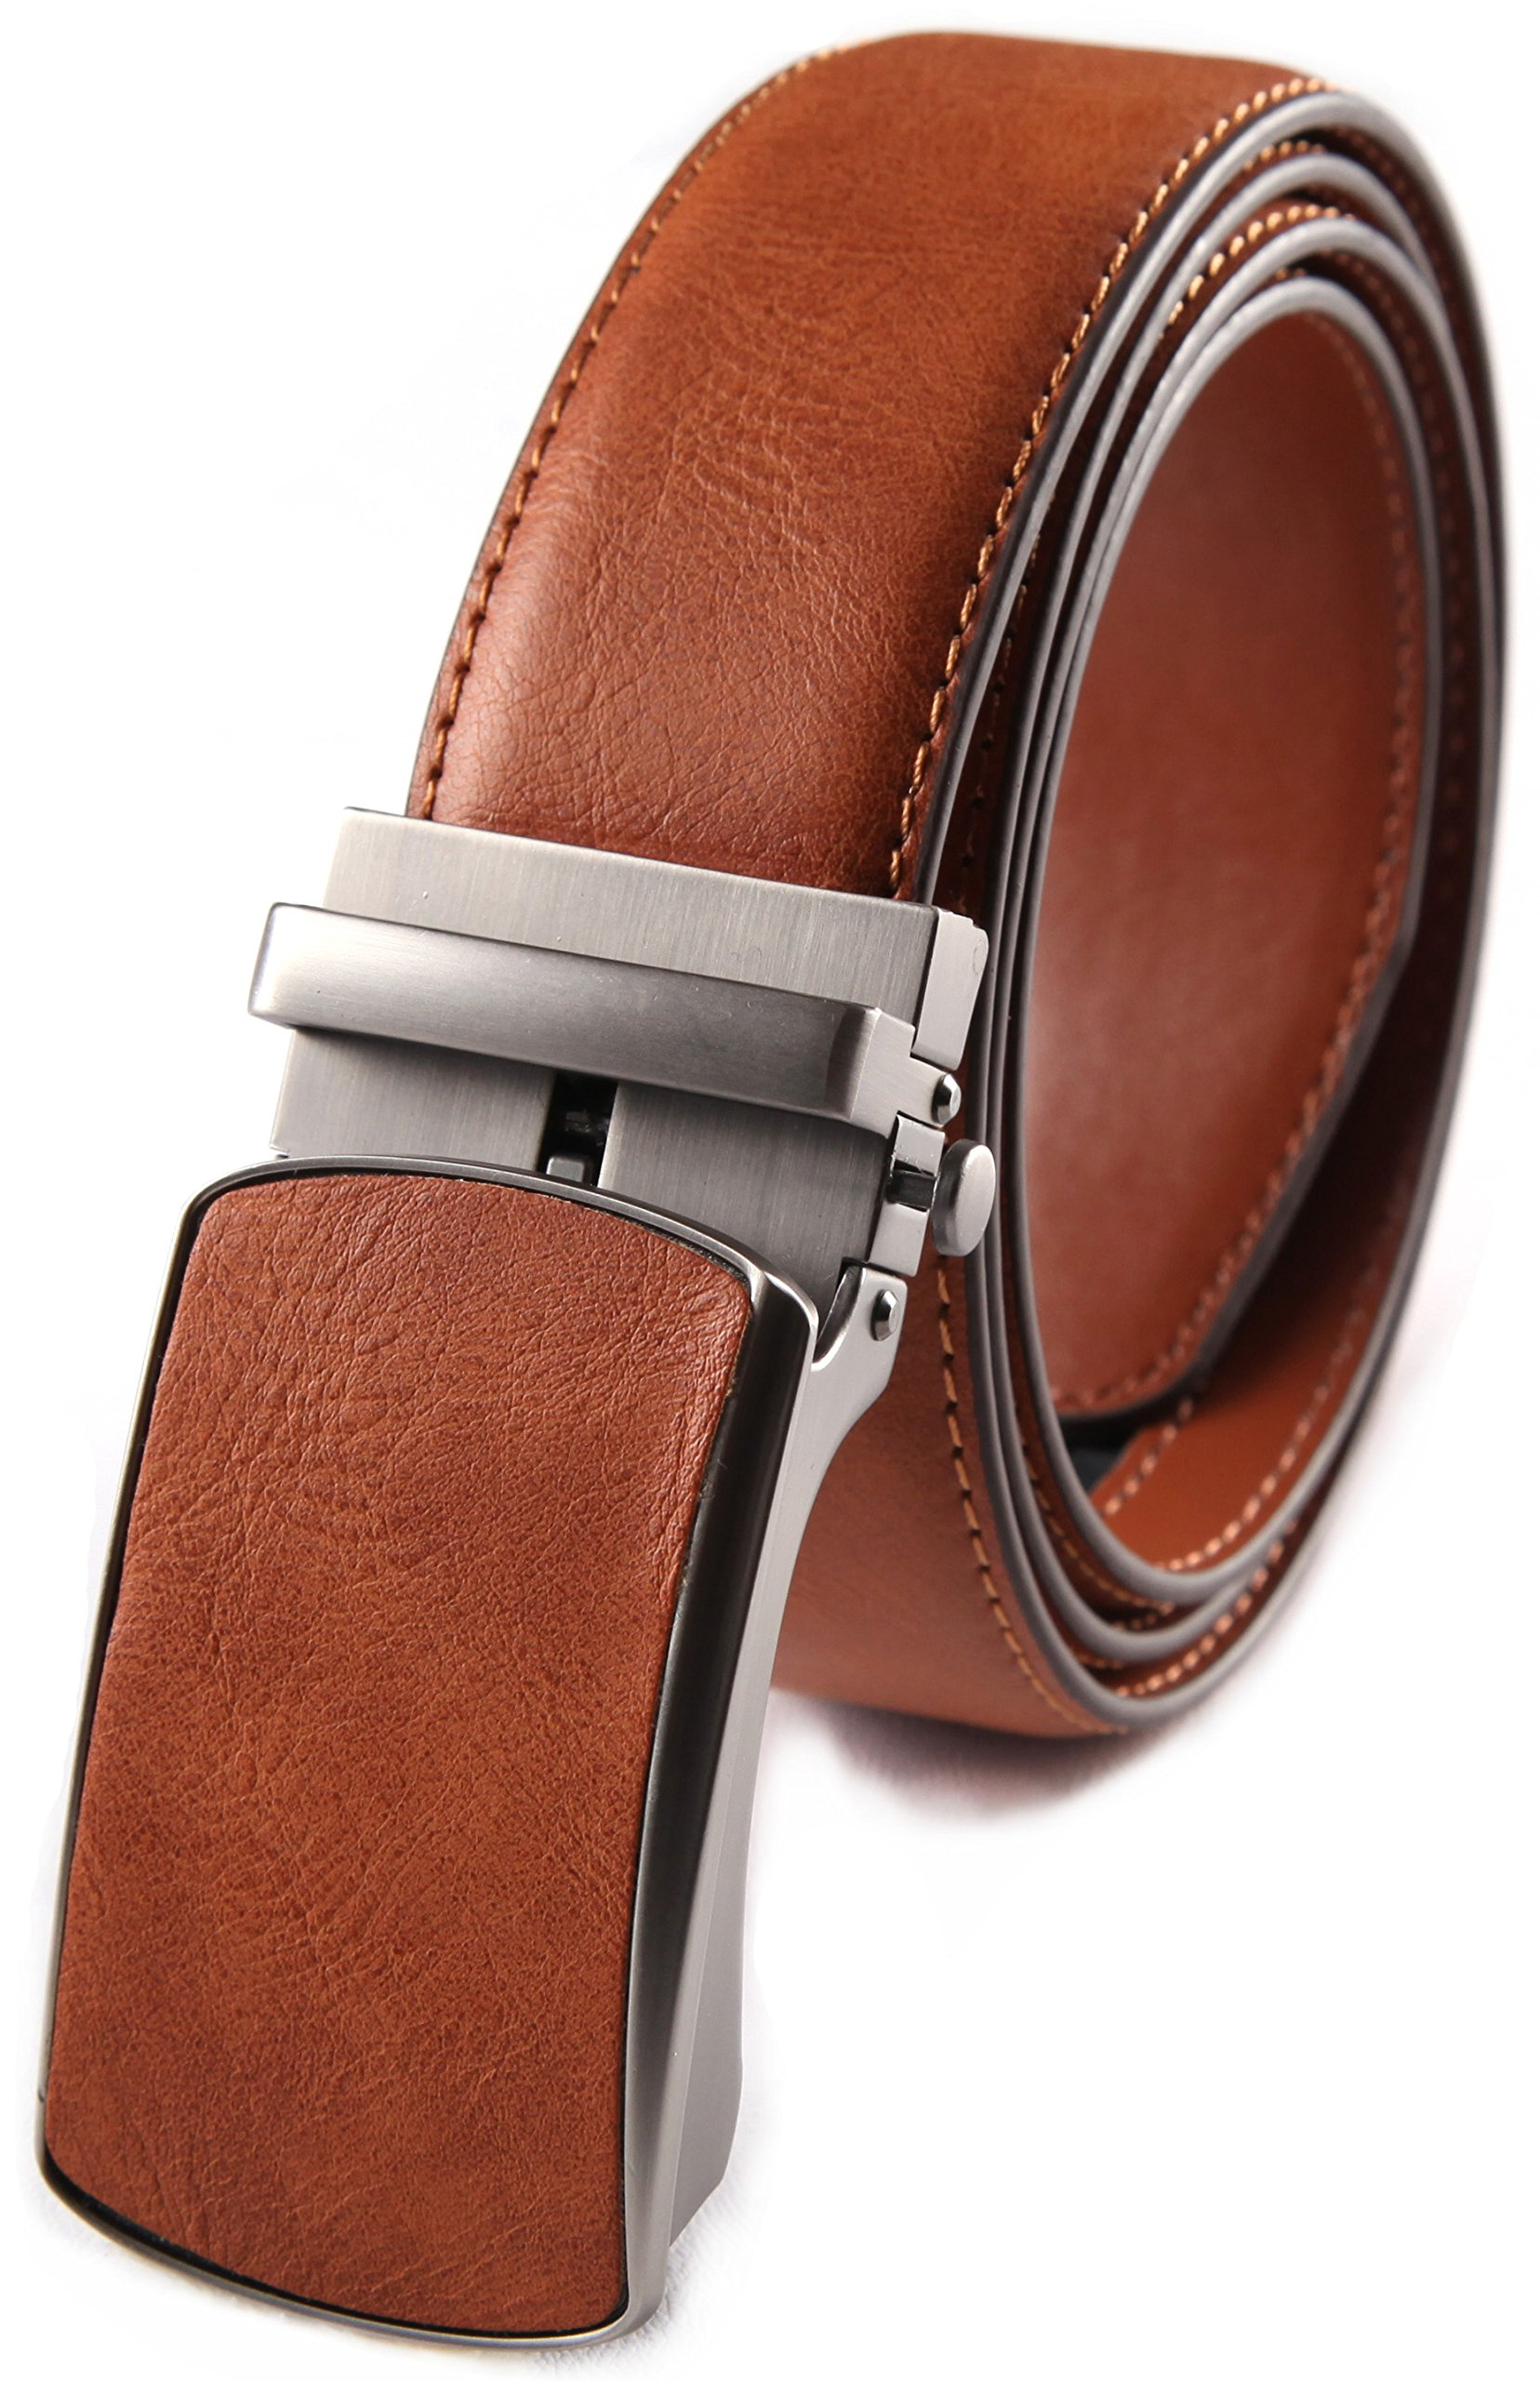 wedding belt for man, Men's Classic Dress Leather Slide Belt with Auto Lock Click Buckle (32/34, #3 Cognac)